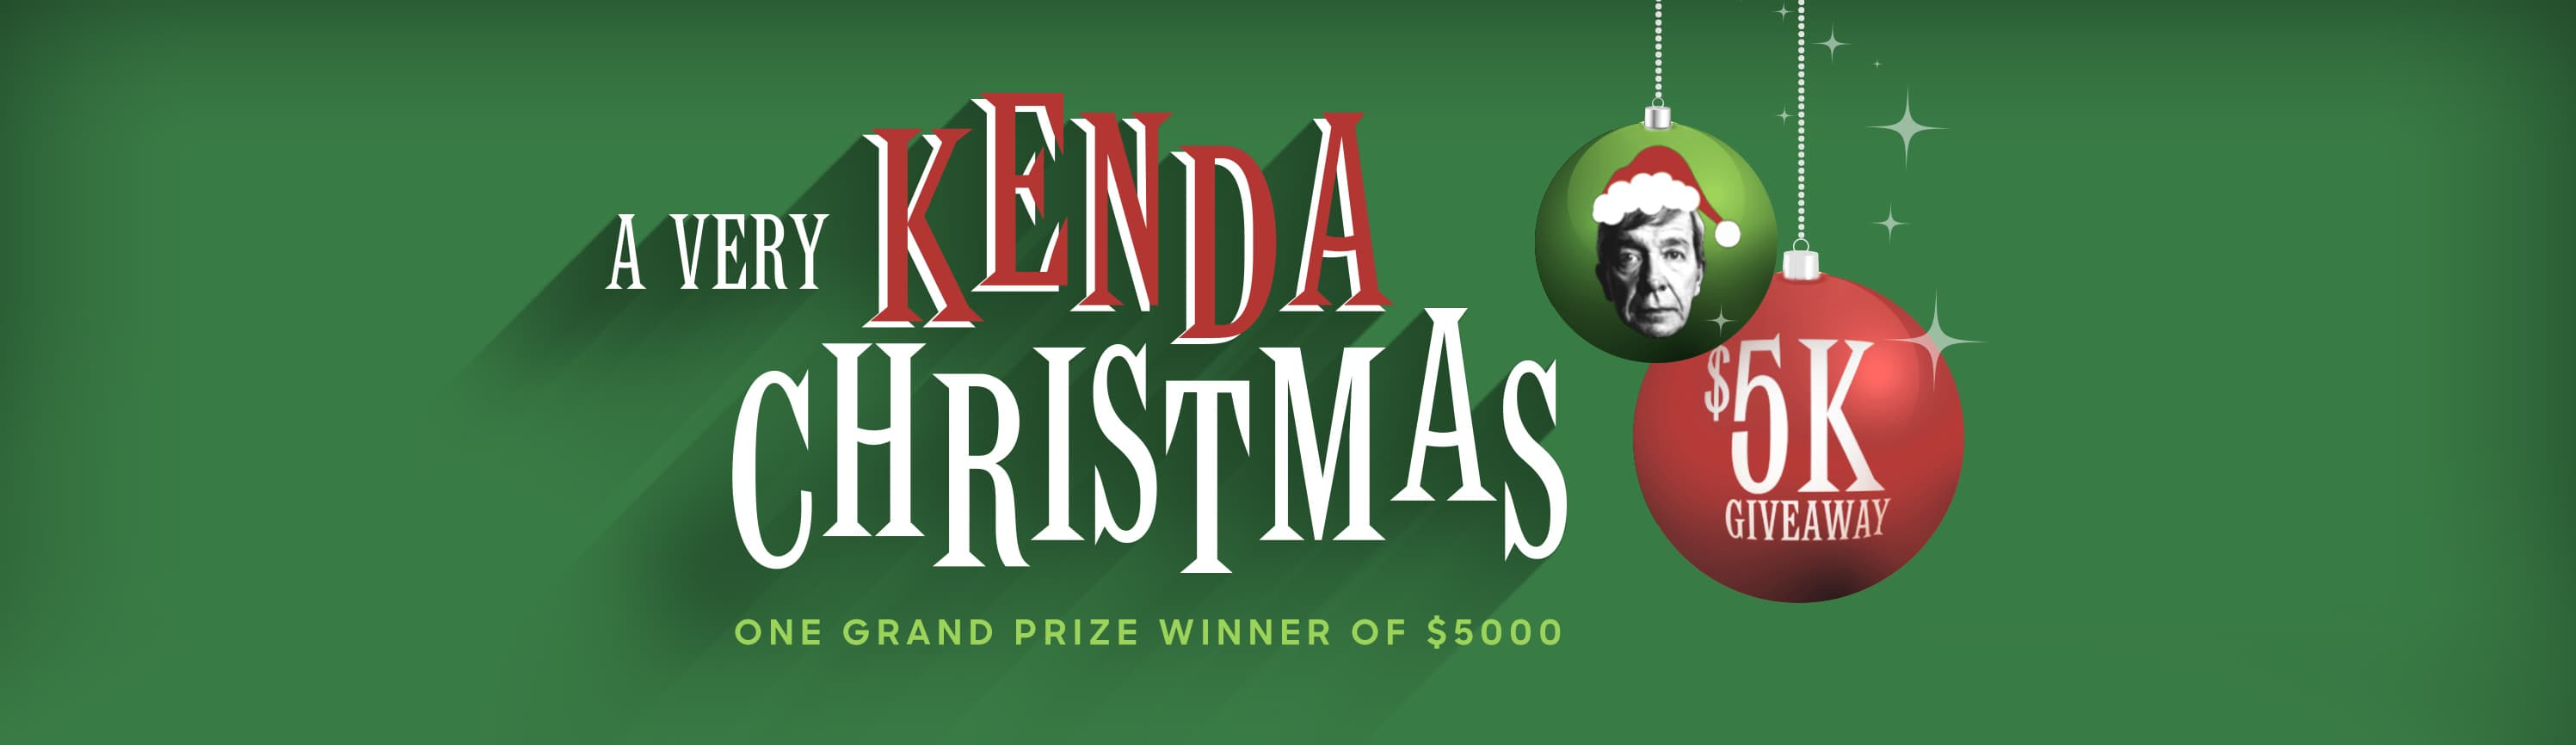 A Very Kenda Christmas Giveaway